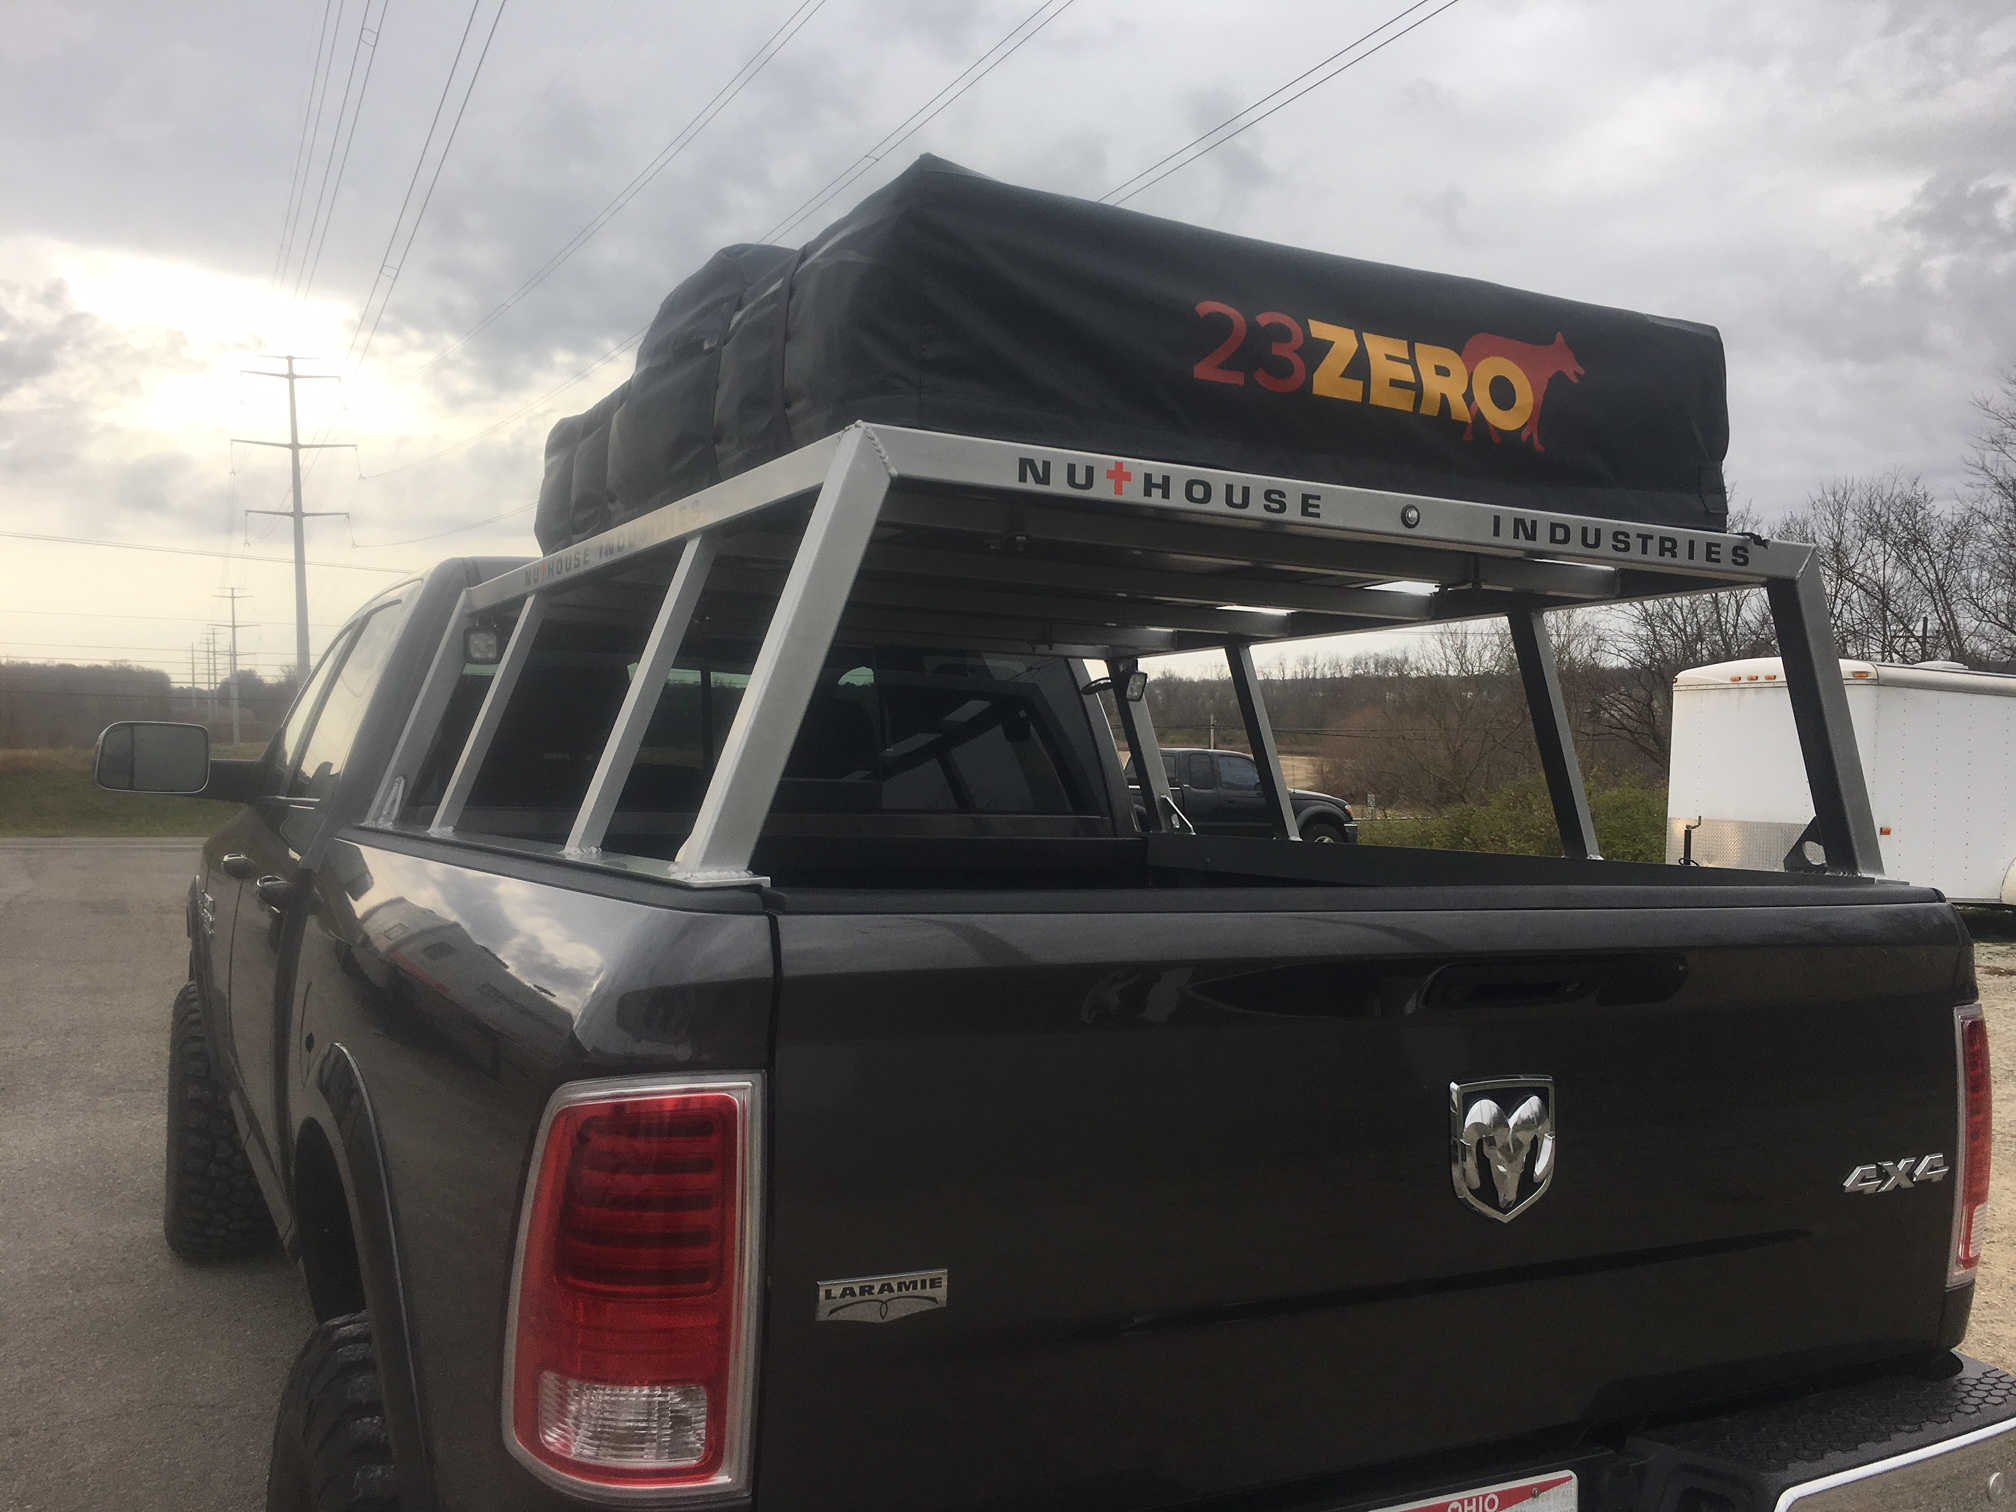 ... Aluminum aluminum bed rack aluminum truck bed rack roof top tent rack overlanding truck ... & BUNDABERG ROOF TOP TENT - 23Zero - Nuthouse Industries